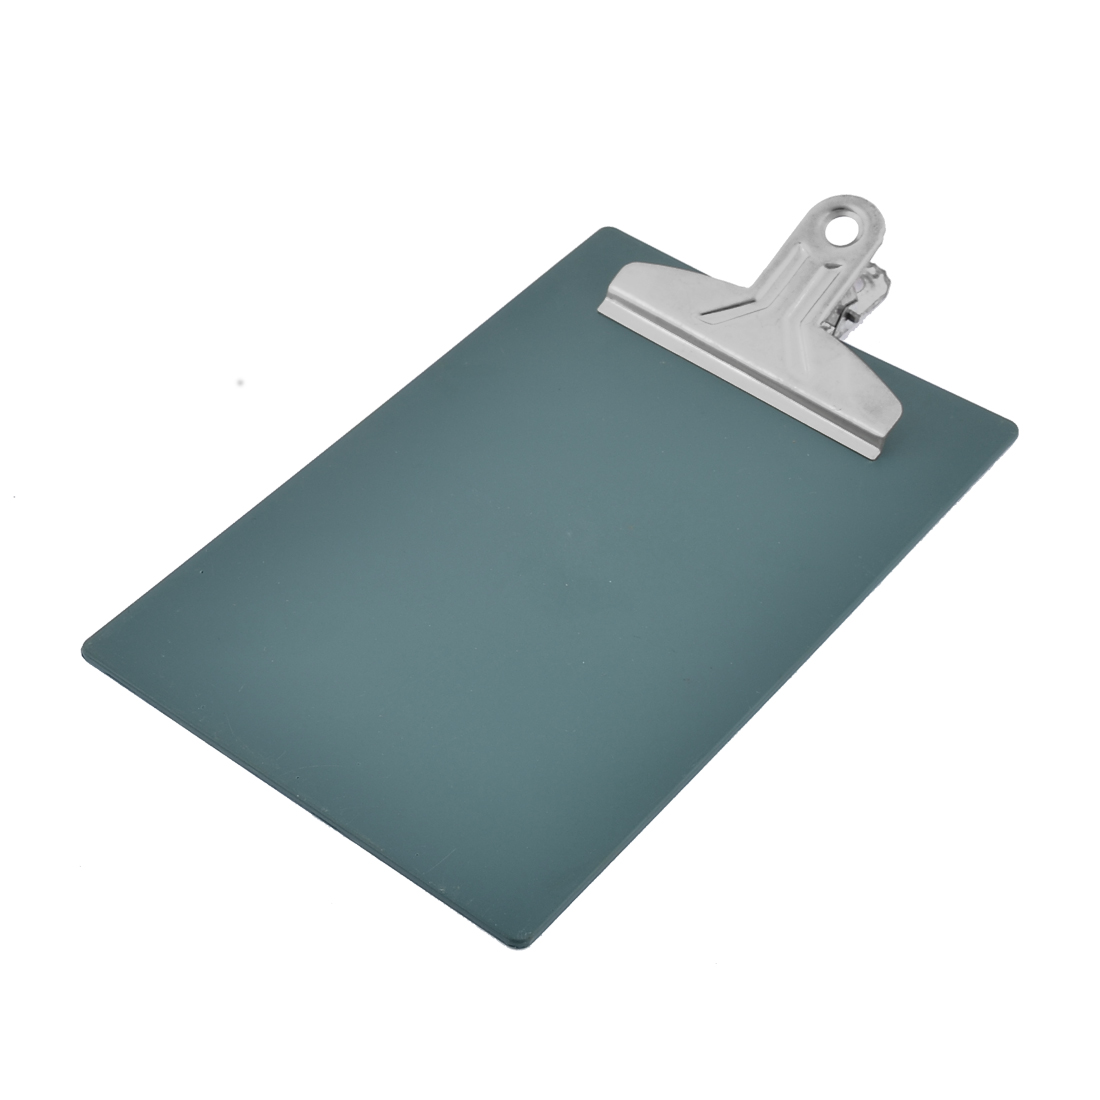 Office Restaurant Documents Stationery Files Plastic Clipboard Army Green